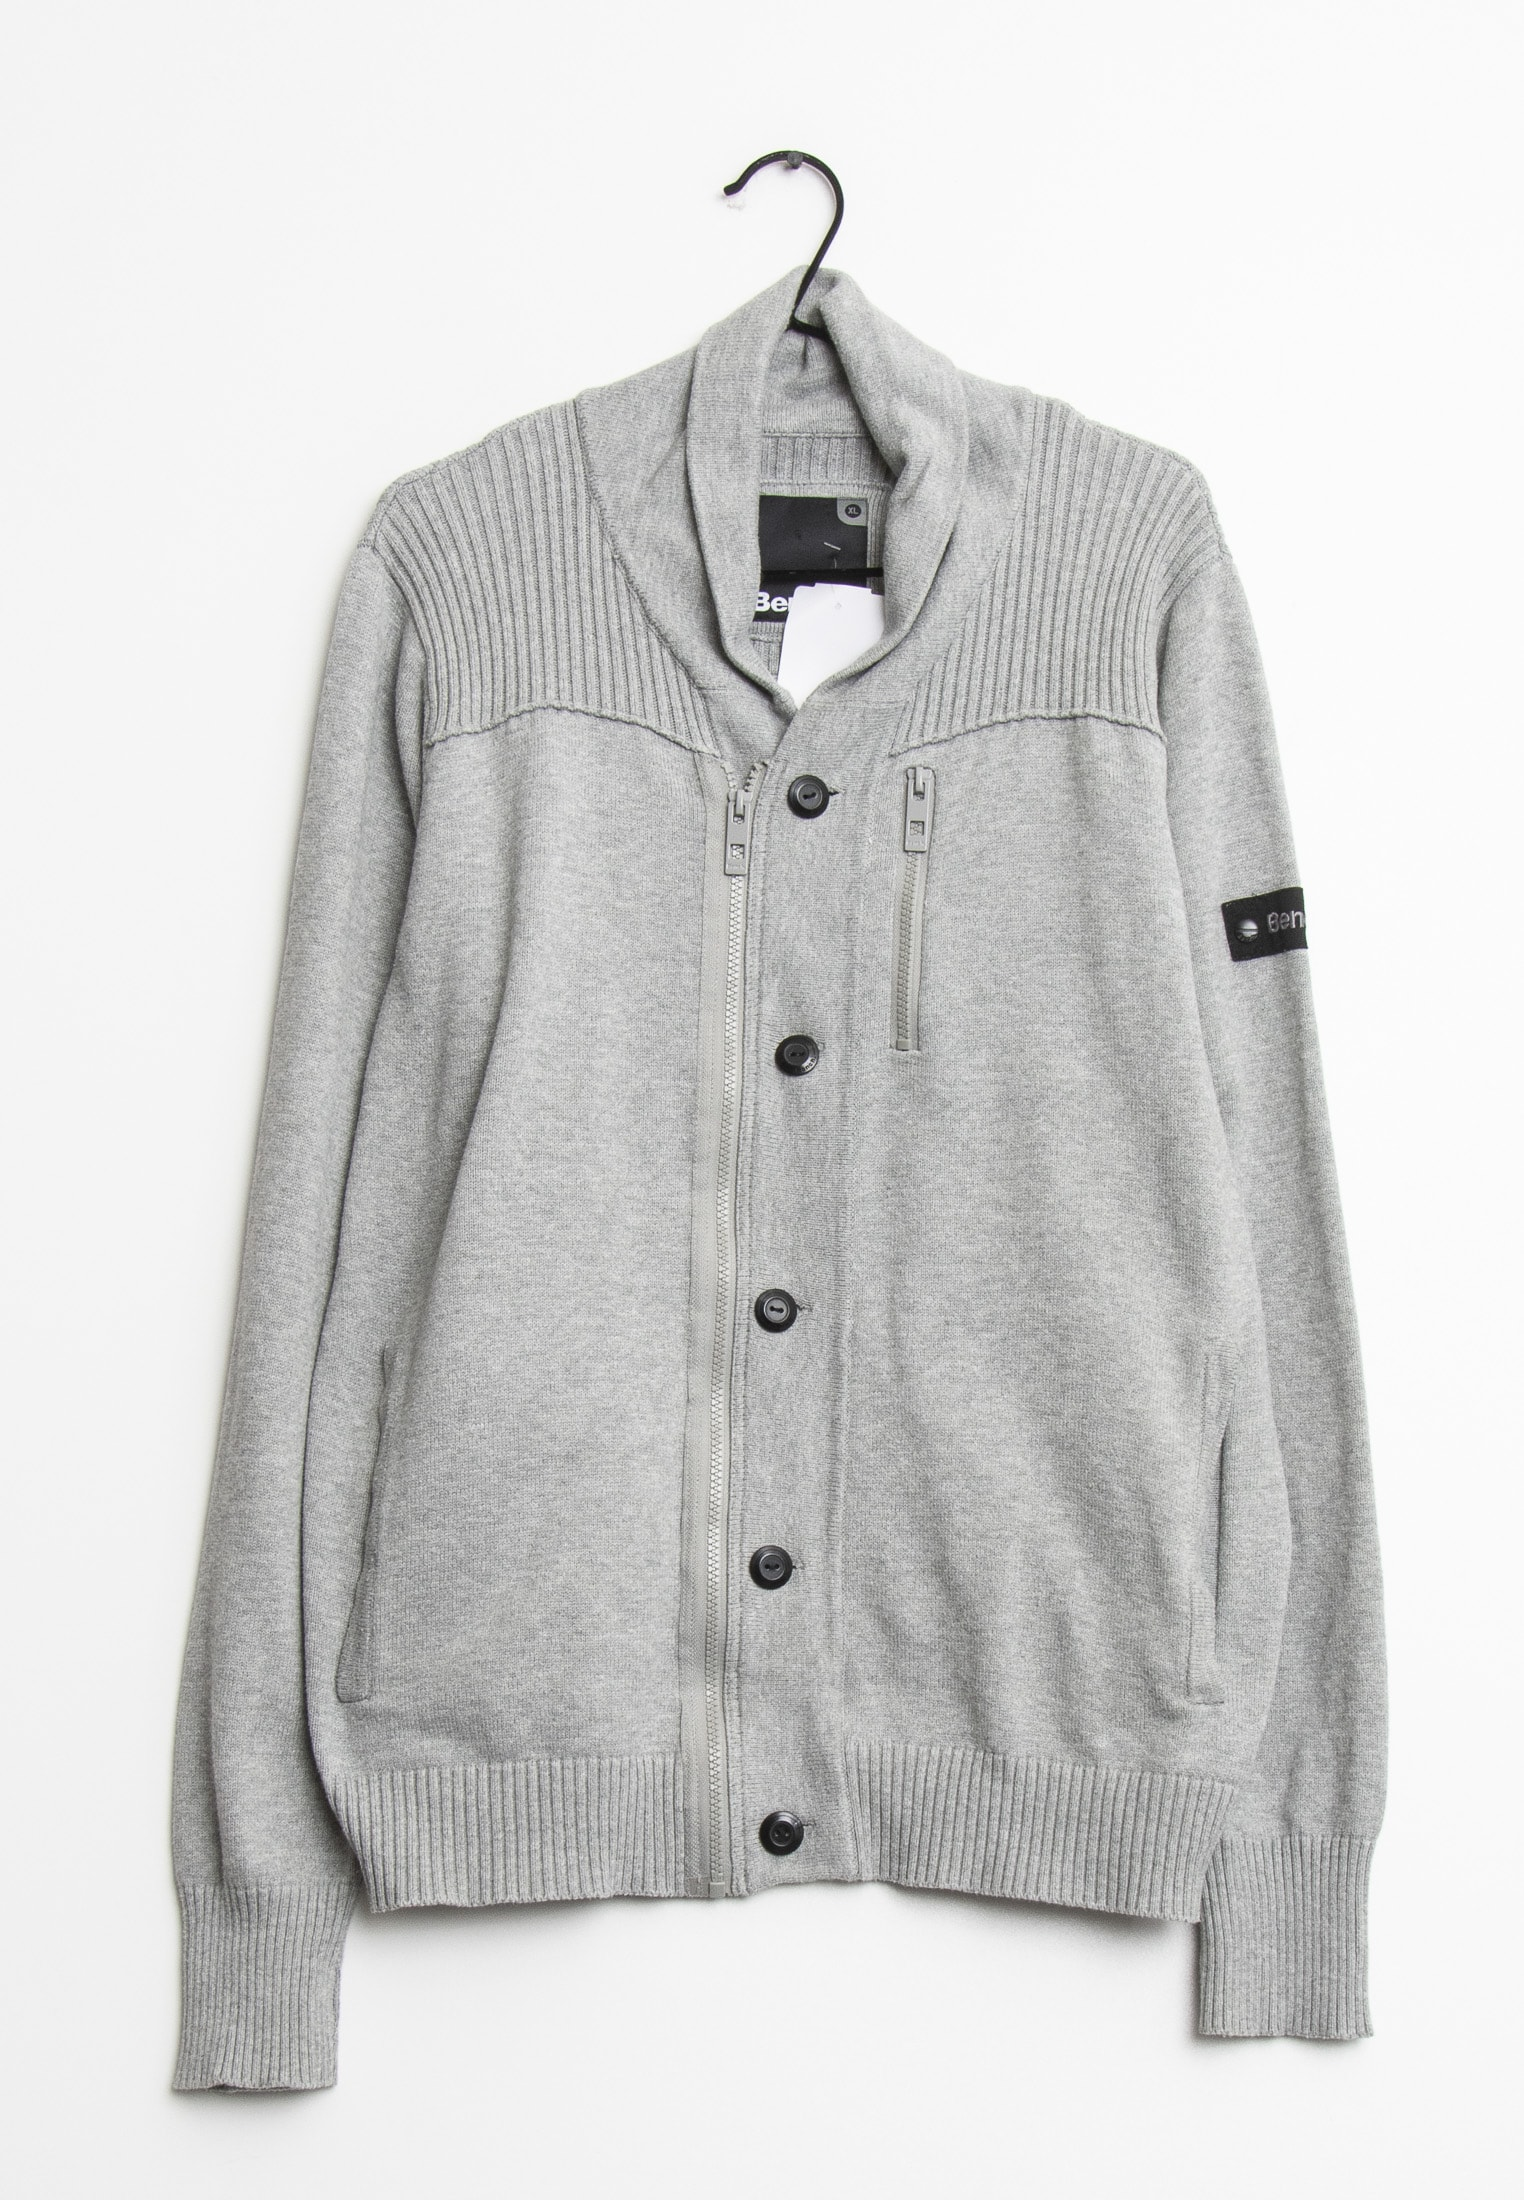 Bench cardigan, grå, XL